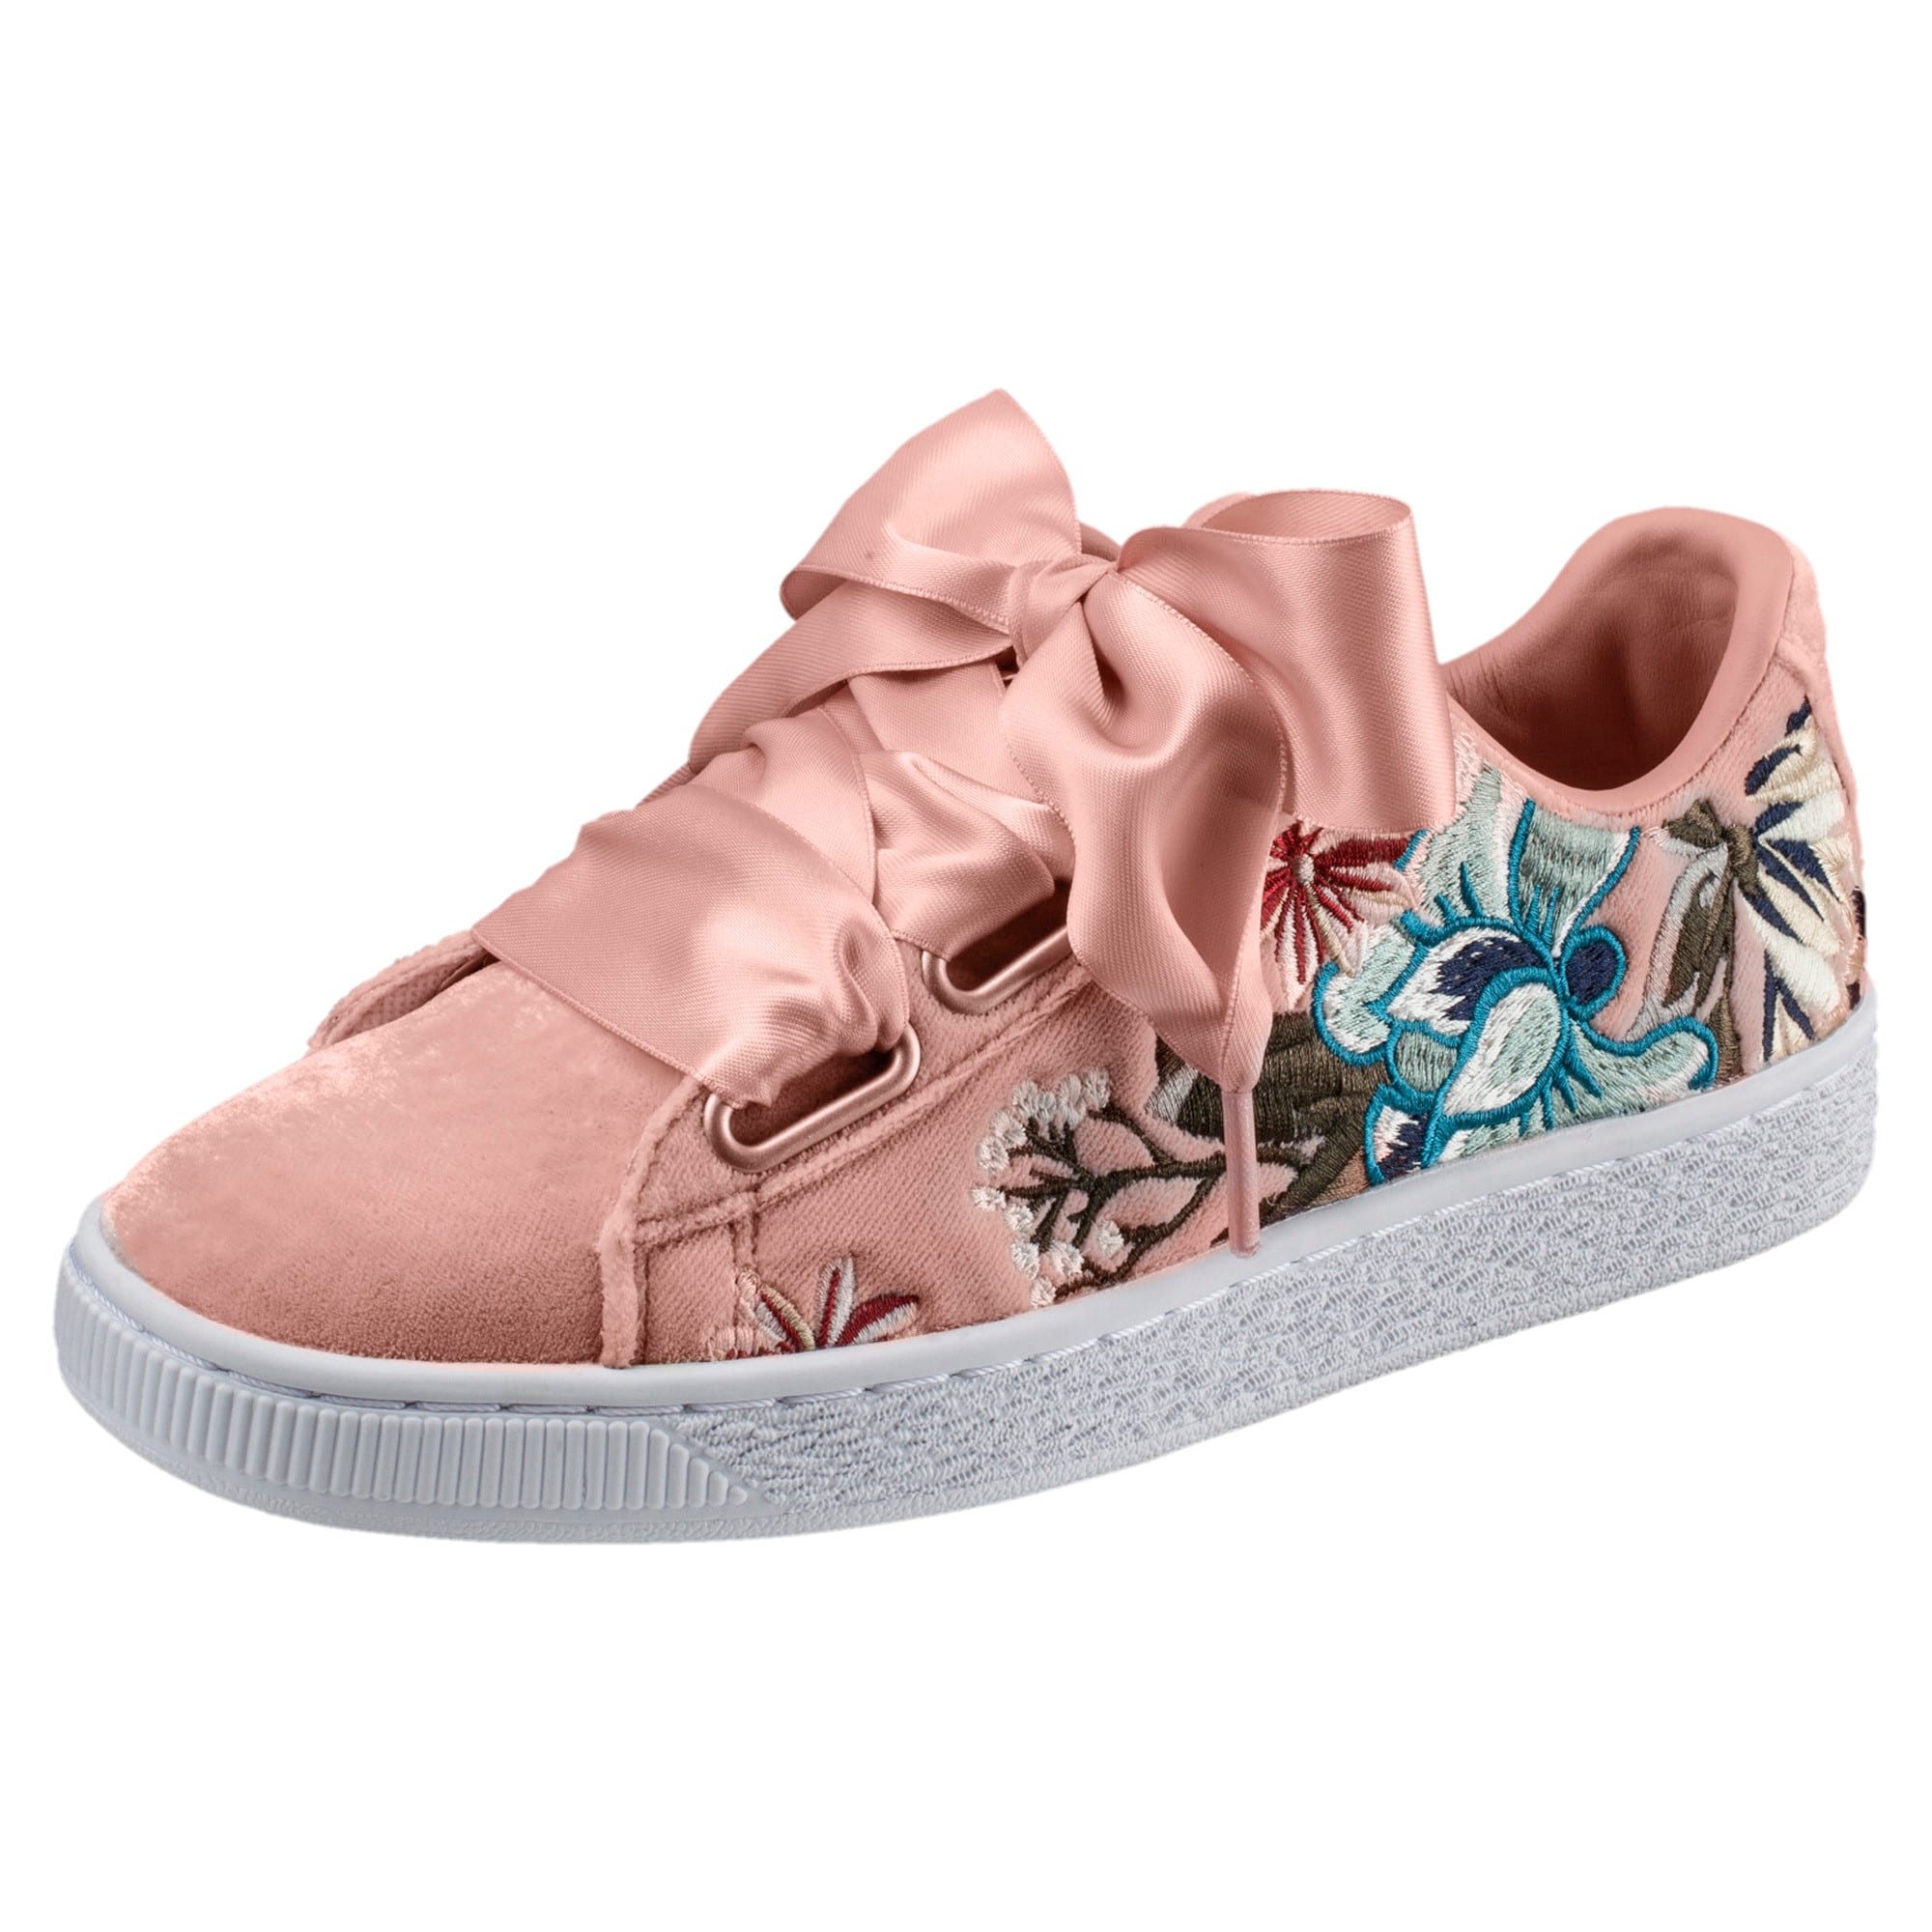 Thumbnail 1 of Basket Heart Hyper Embroidery Women's Trainers, Peach Beige, medium-IND